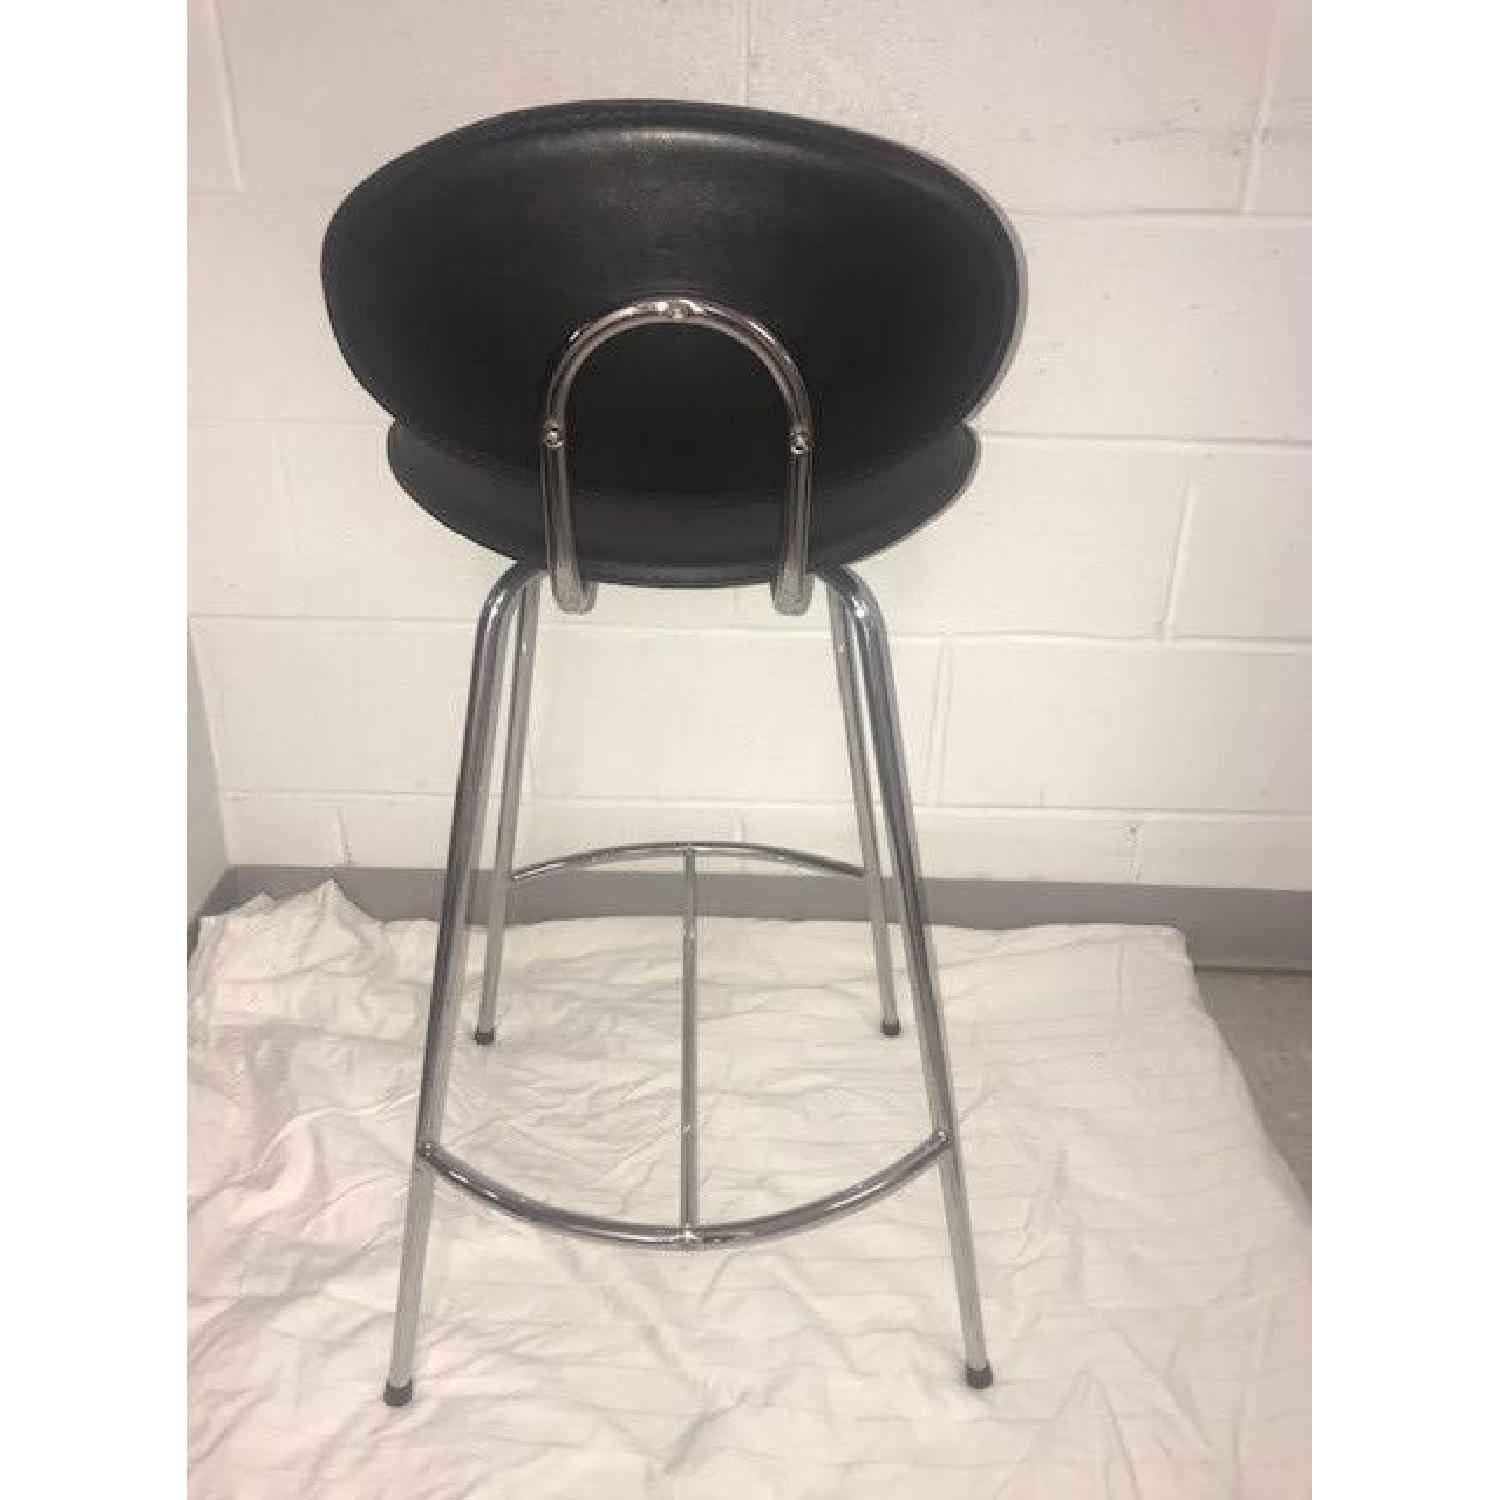 Room & Board Chrome & Black Barstools-1